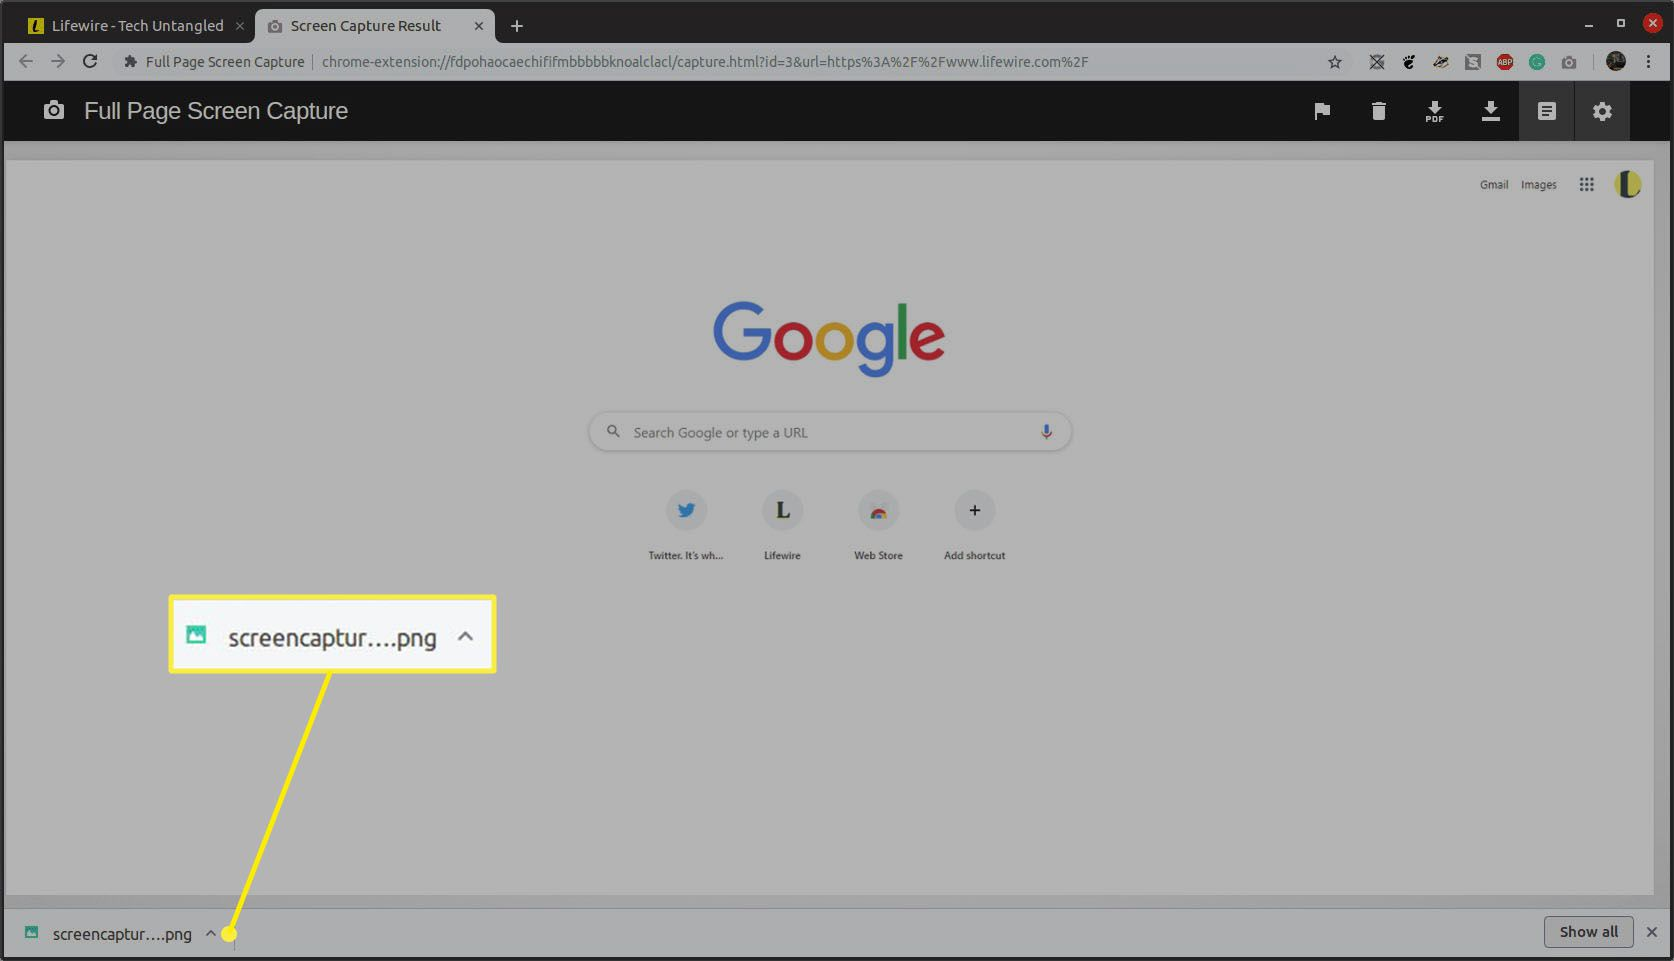 How to Screenshot a Whole Page in Chrome